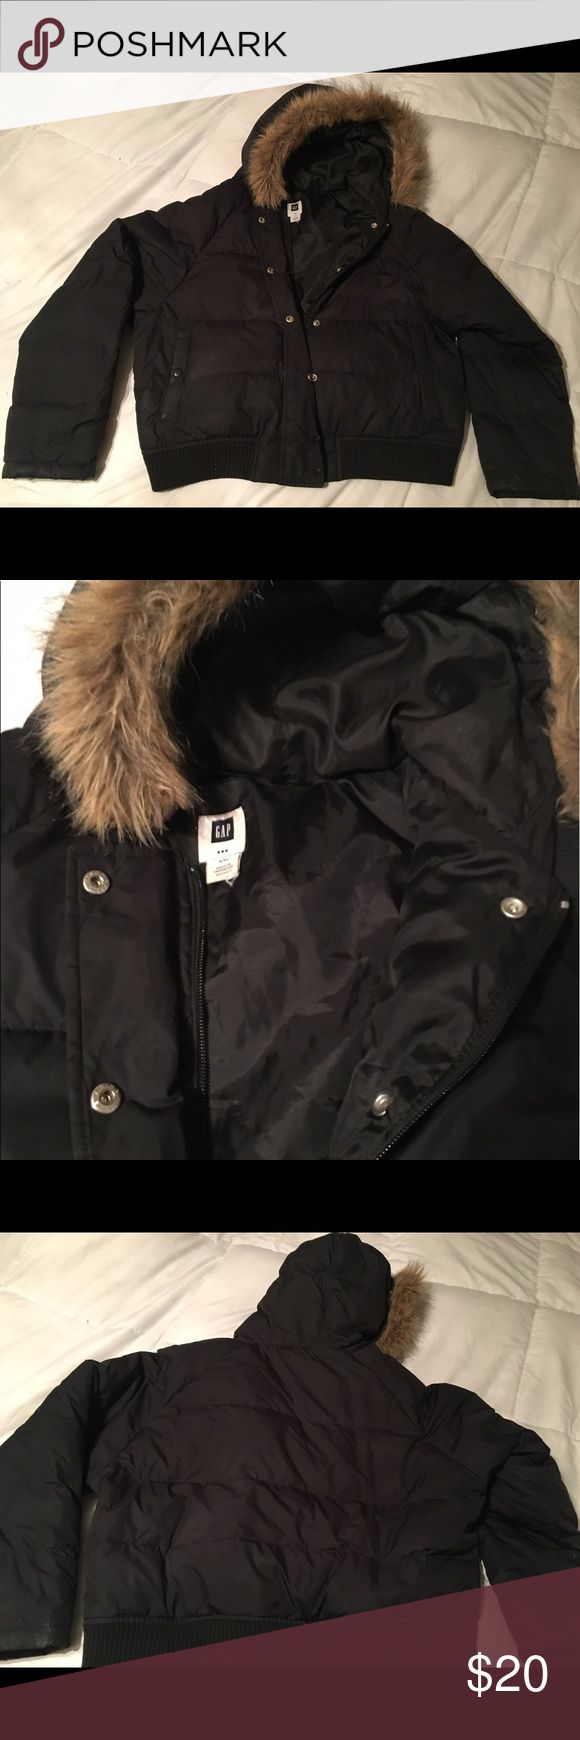 GAP puffer coat with fir trim Nice and warm puffy Gap jacket. Front zipper and button closure, faux fir trim along hood. Great used condition. GAP Jackets & Coats Puffers